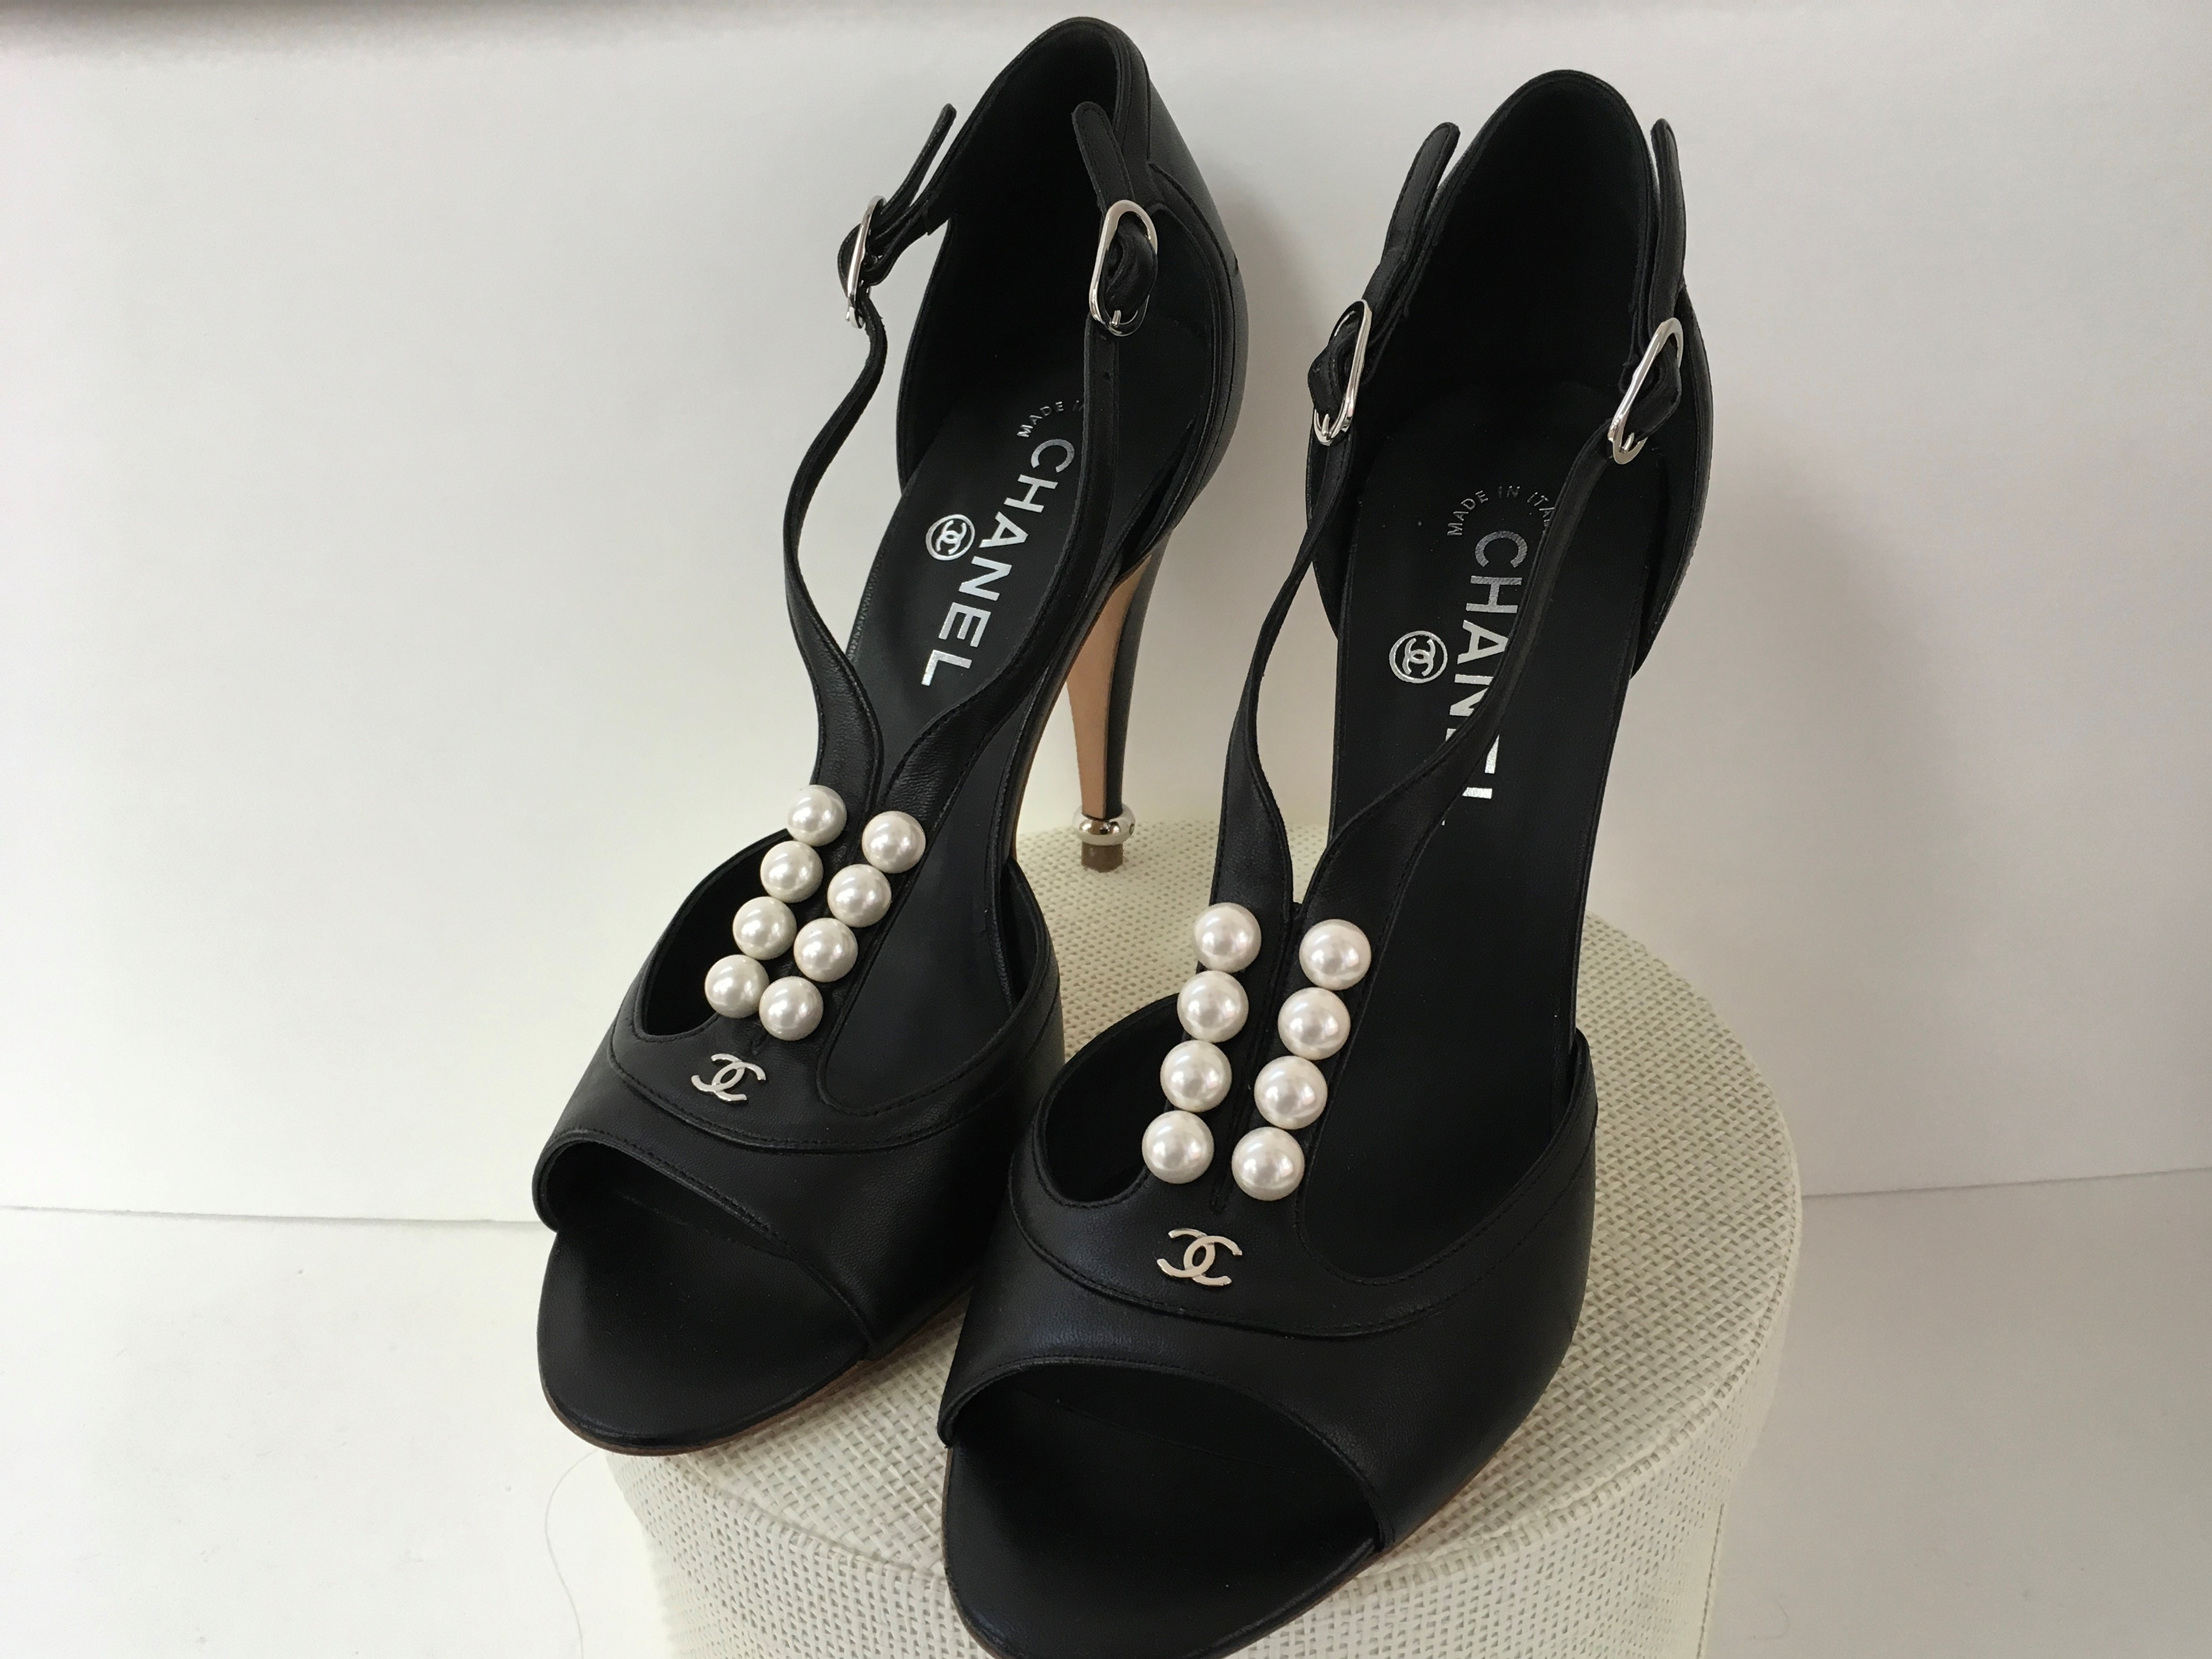 CHANEL SHOES (2)